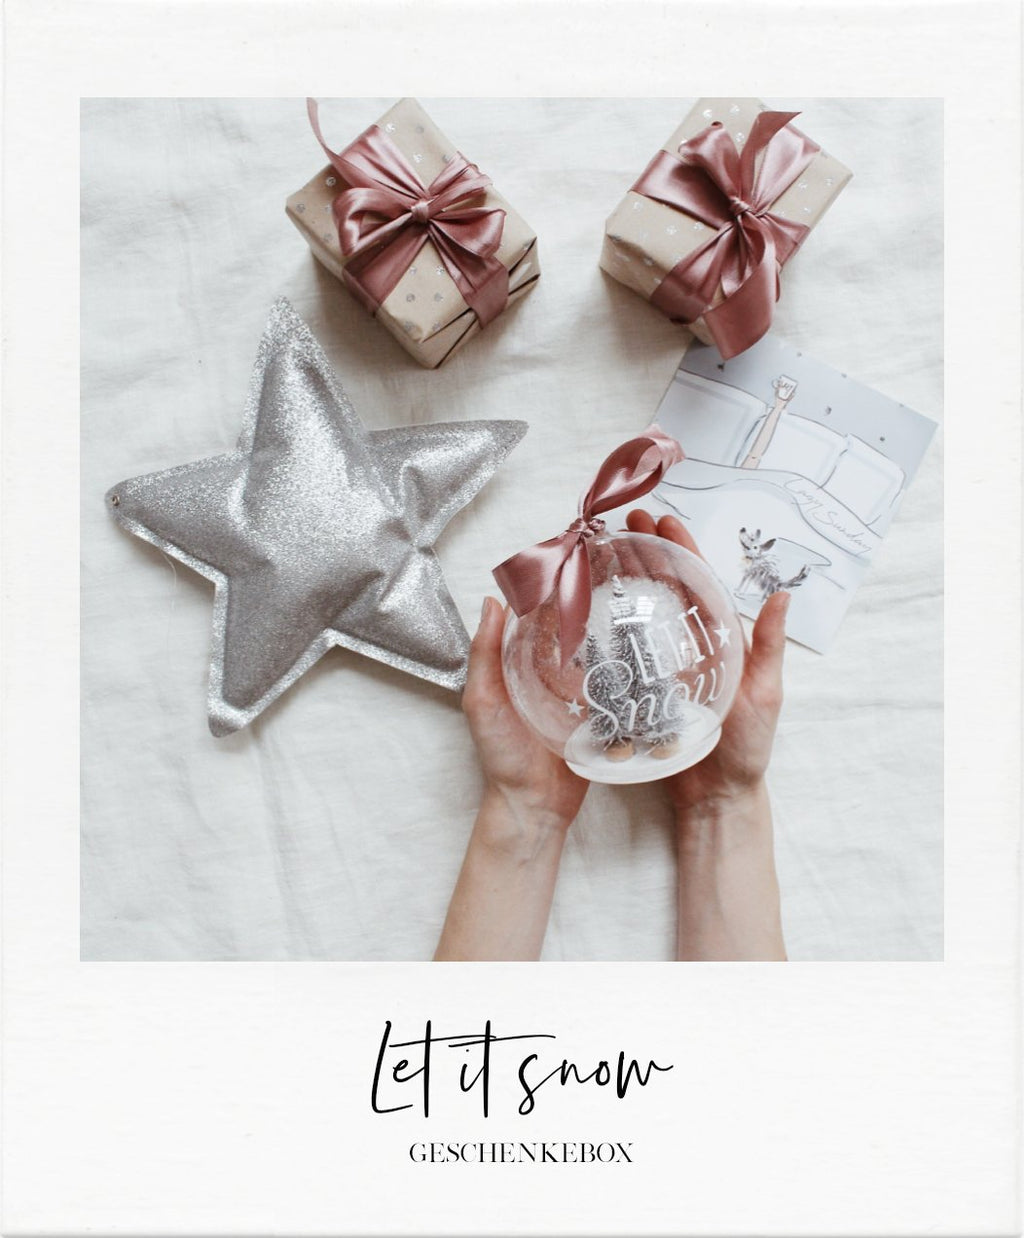 Let it snow - Geschenkebox